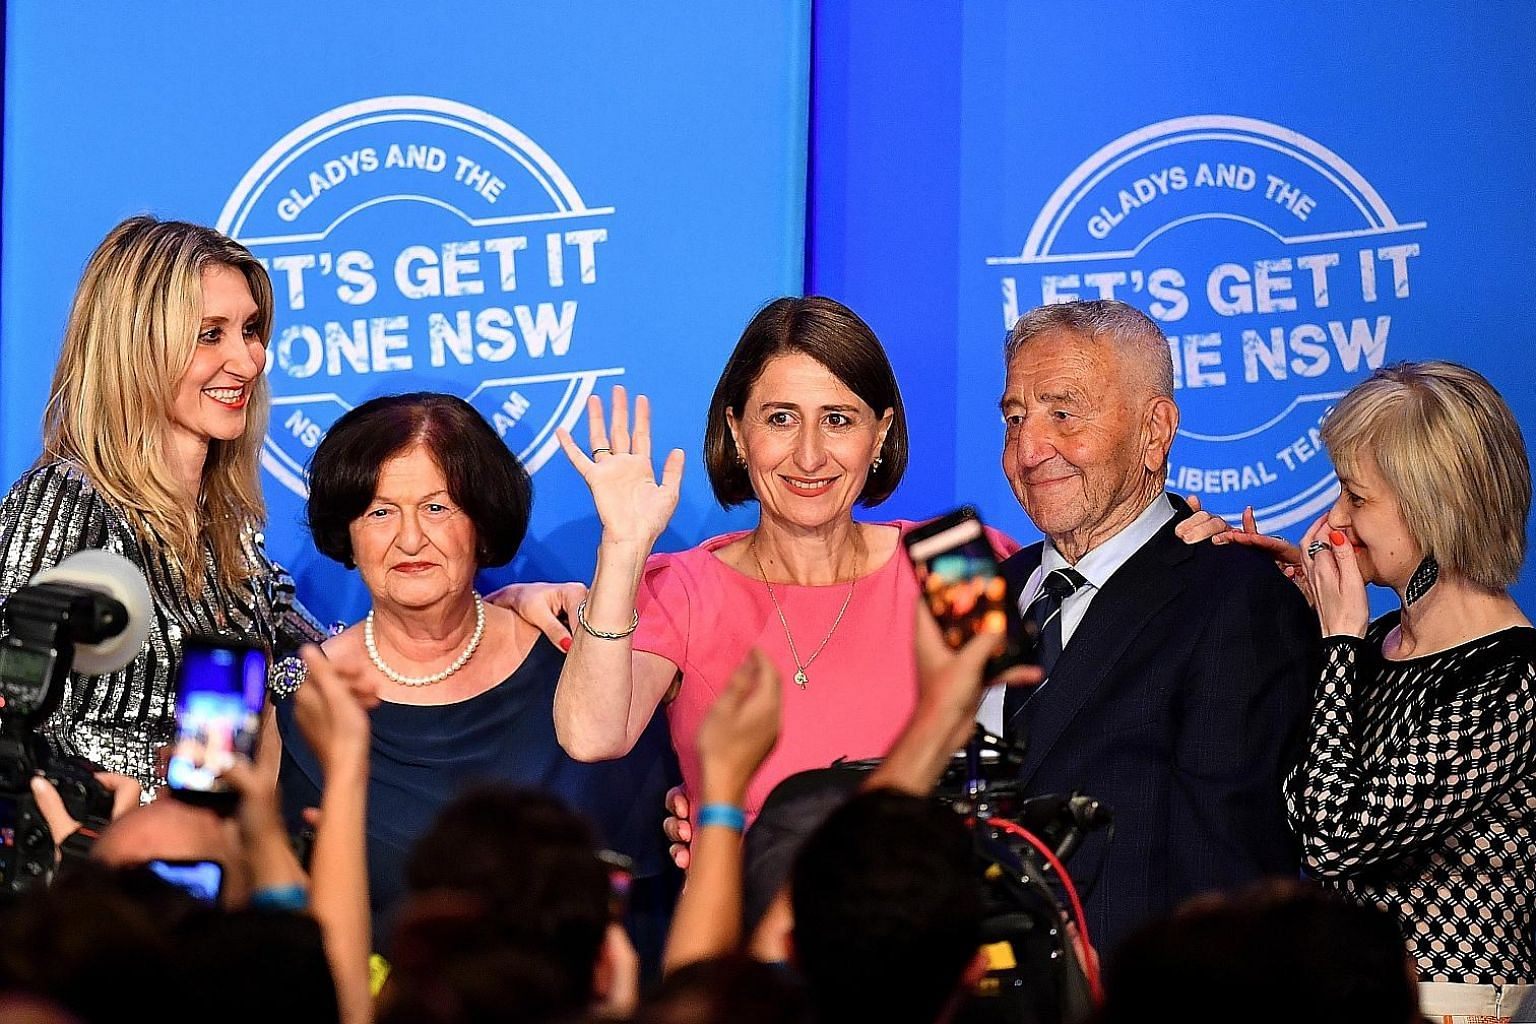 New South Wales Liberal leader Gladys Berejiklian (waving) celebrating her party's win at the New South Wales state election on Saturday, accompanied by her sister Mary (left), mother Arsha, father Krikorat and sister Rita (right).